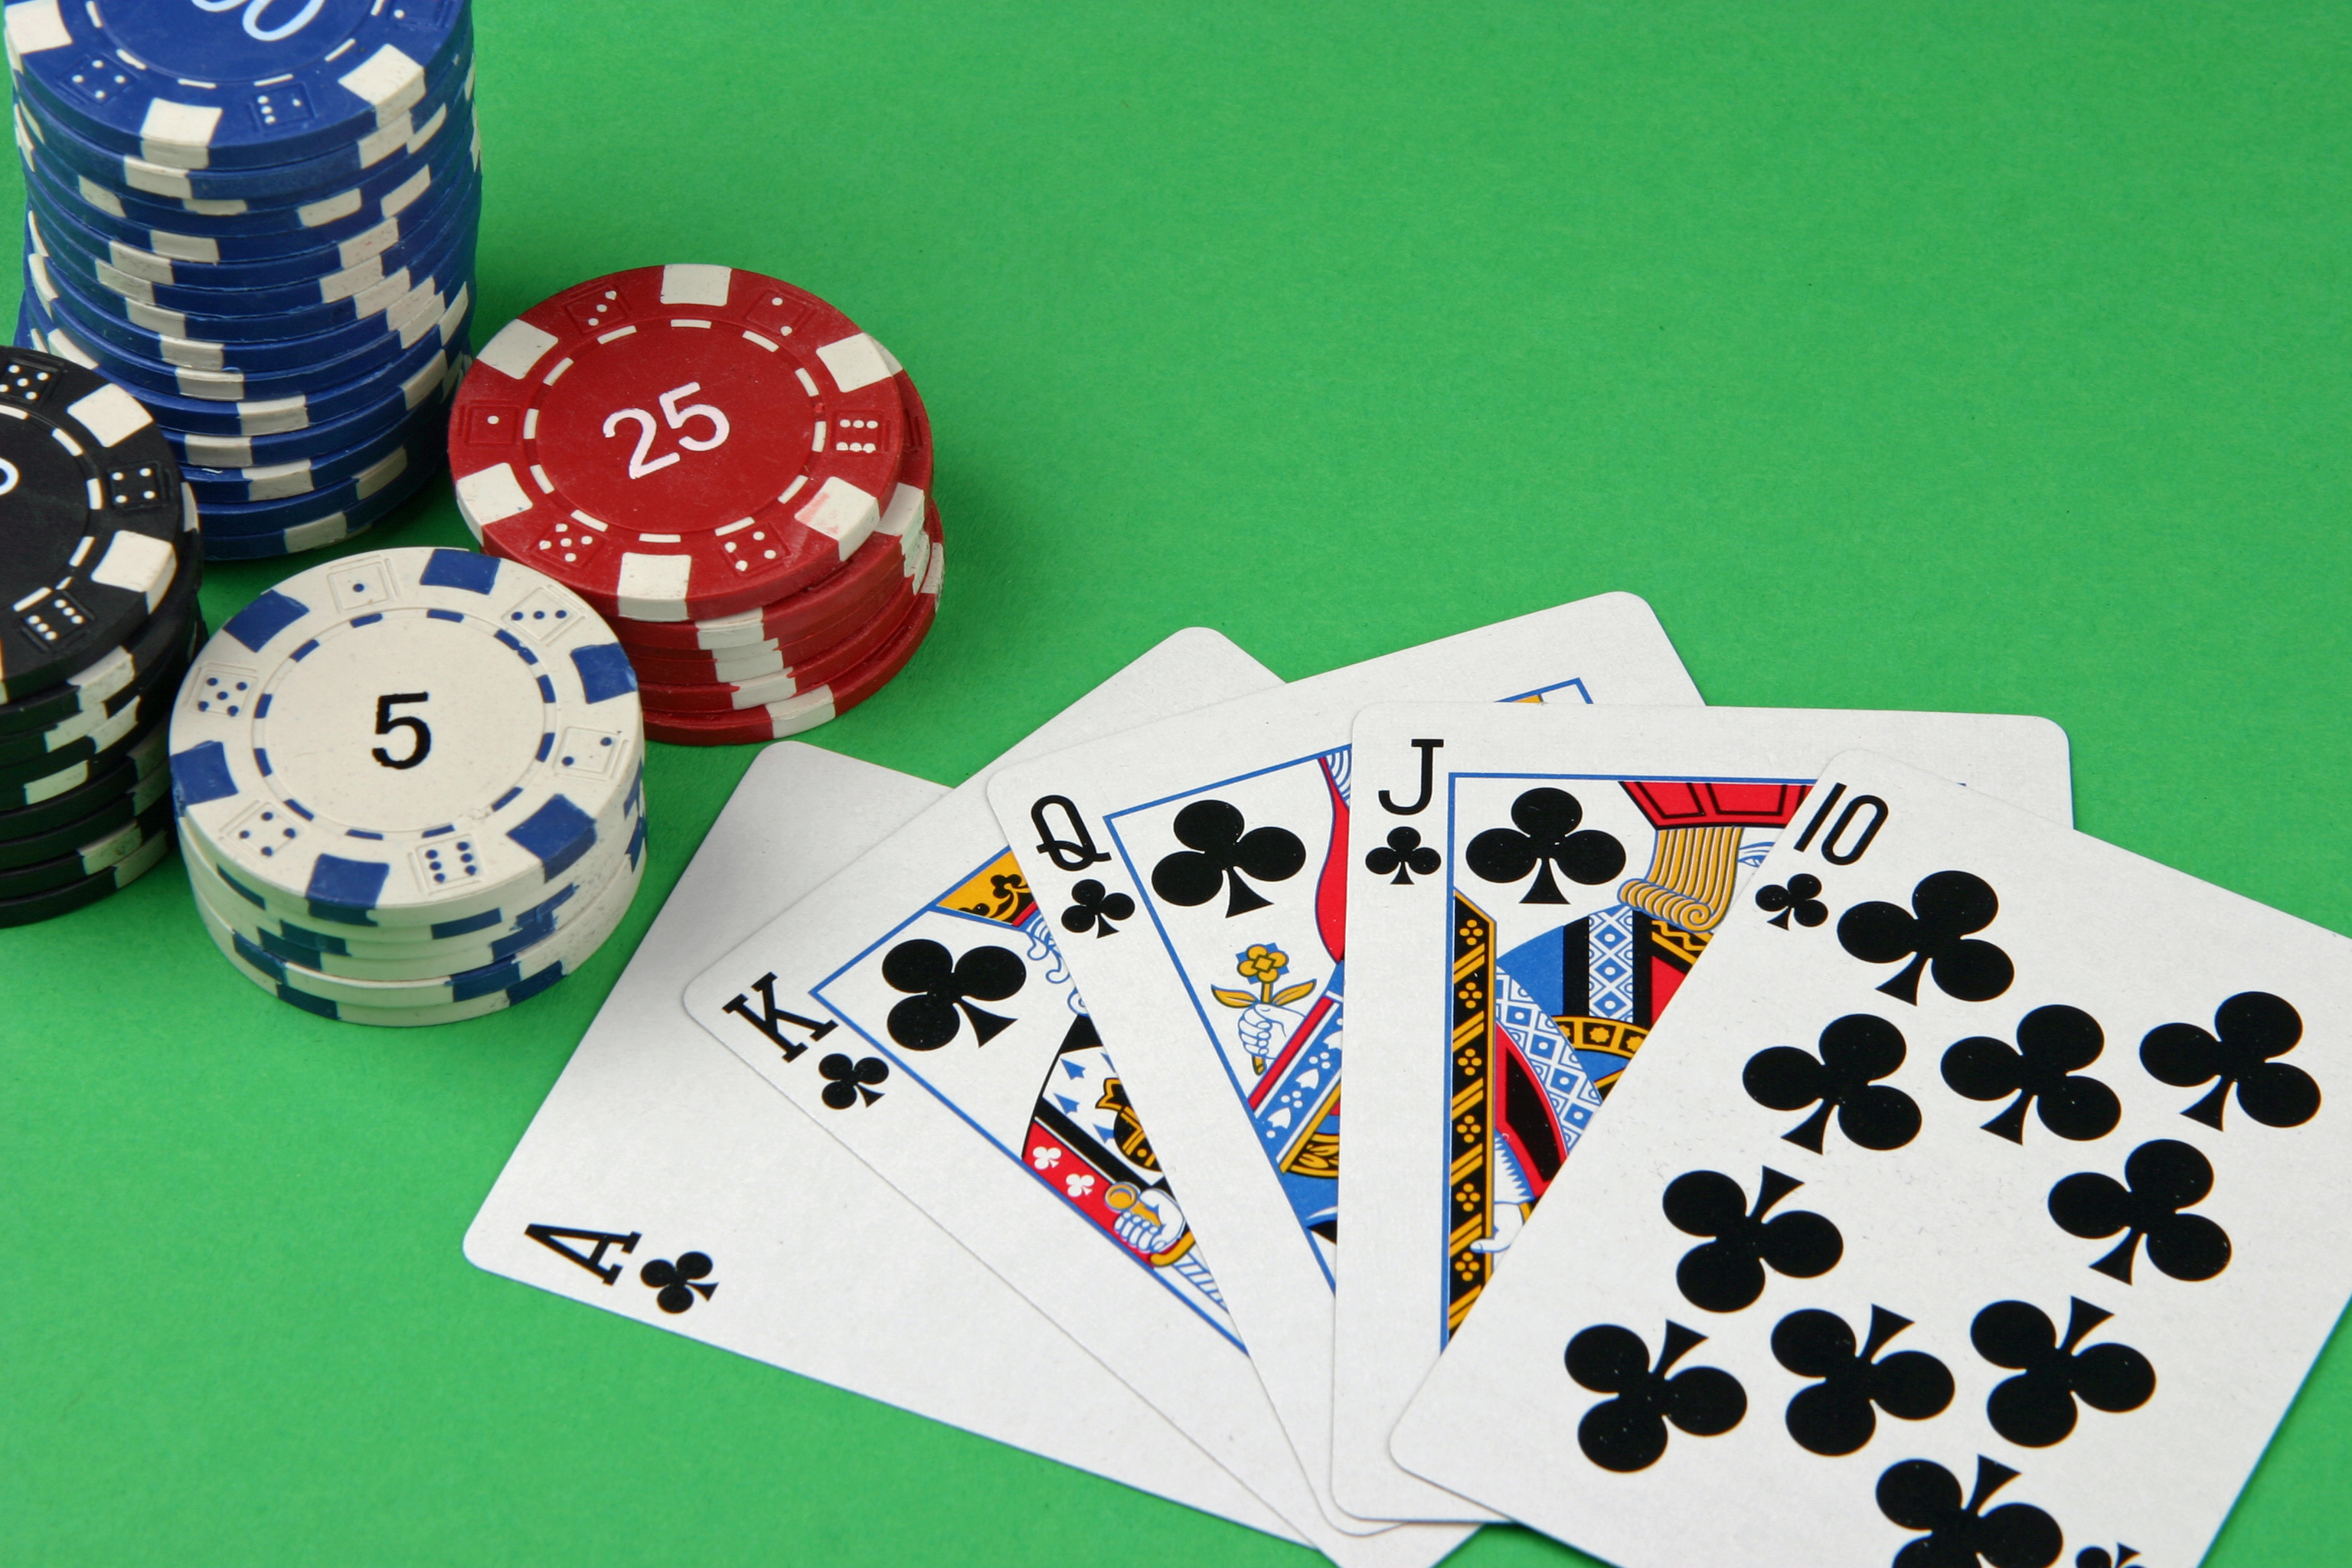 About the casino games city online